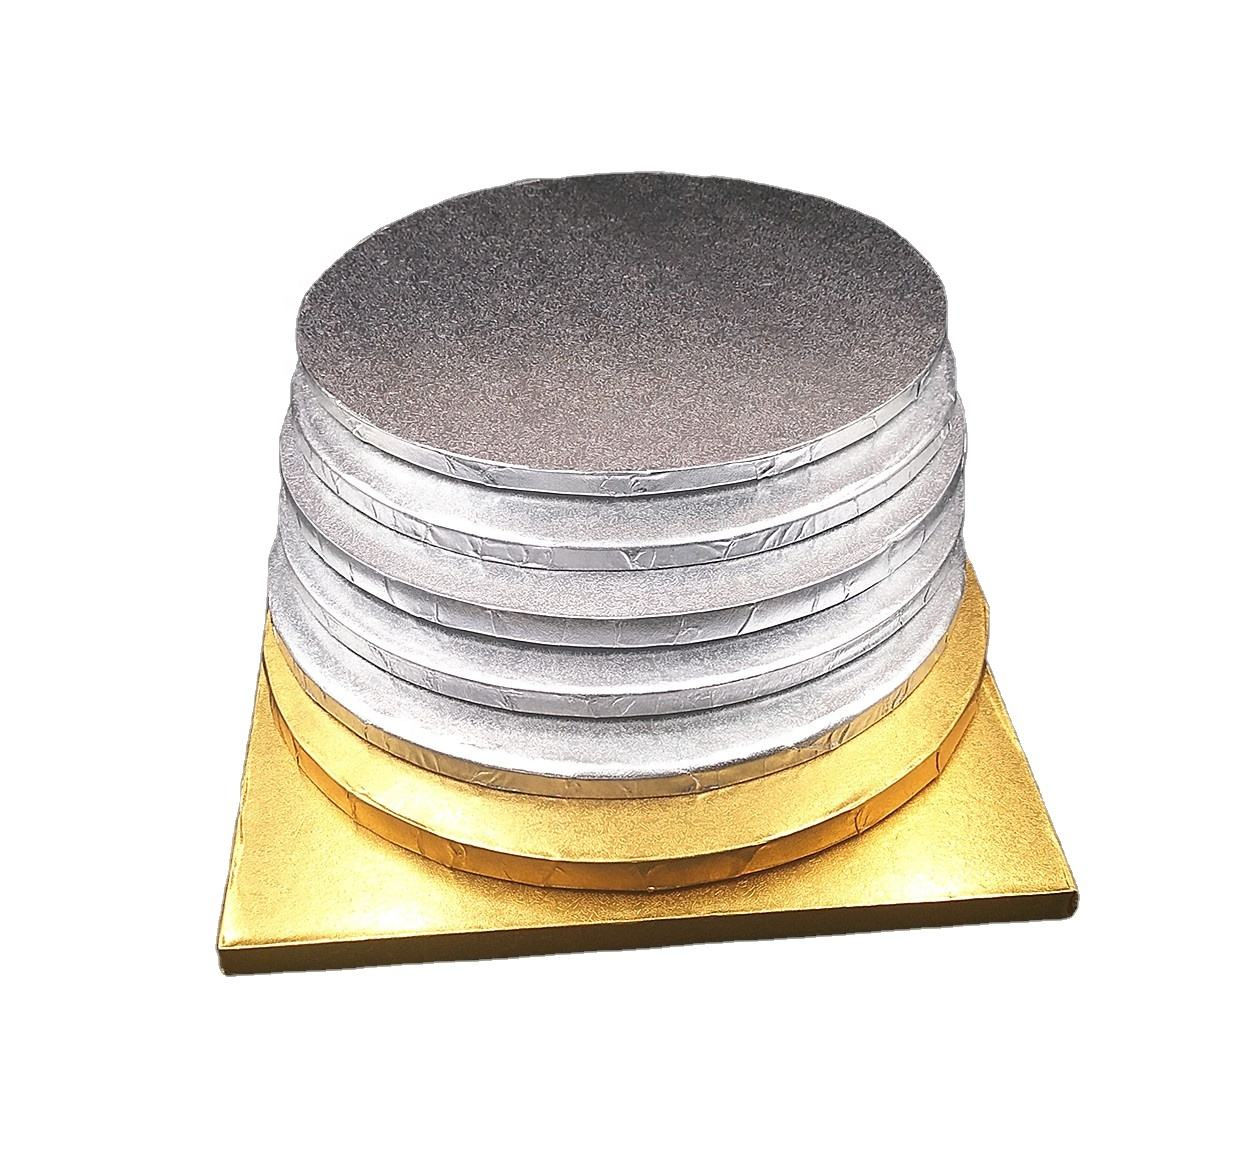 Well Kuchen Boards Runde Platz Gold Silber Folie Pizza Basis Einweg Trommel Kreise 6mm 12mm